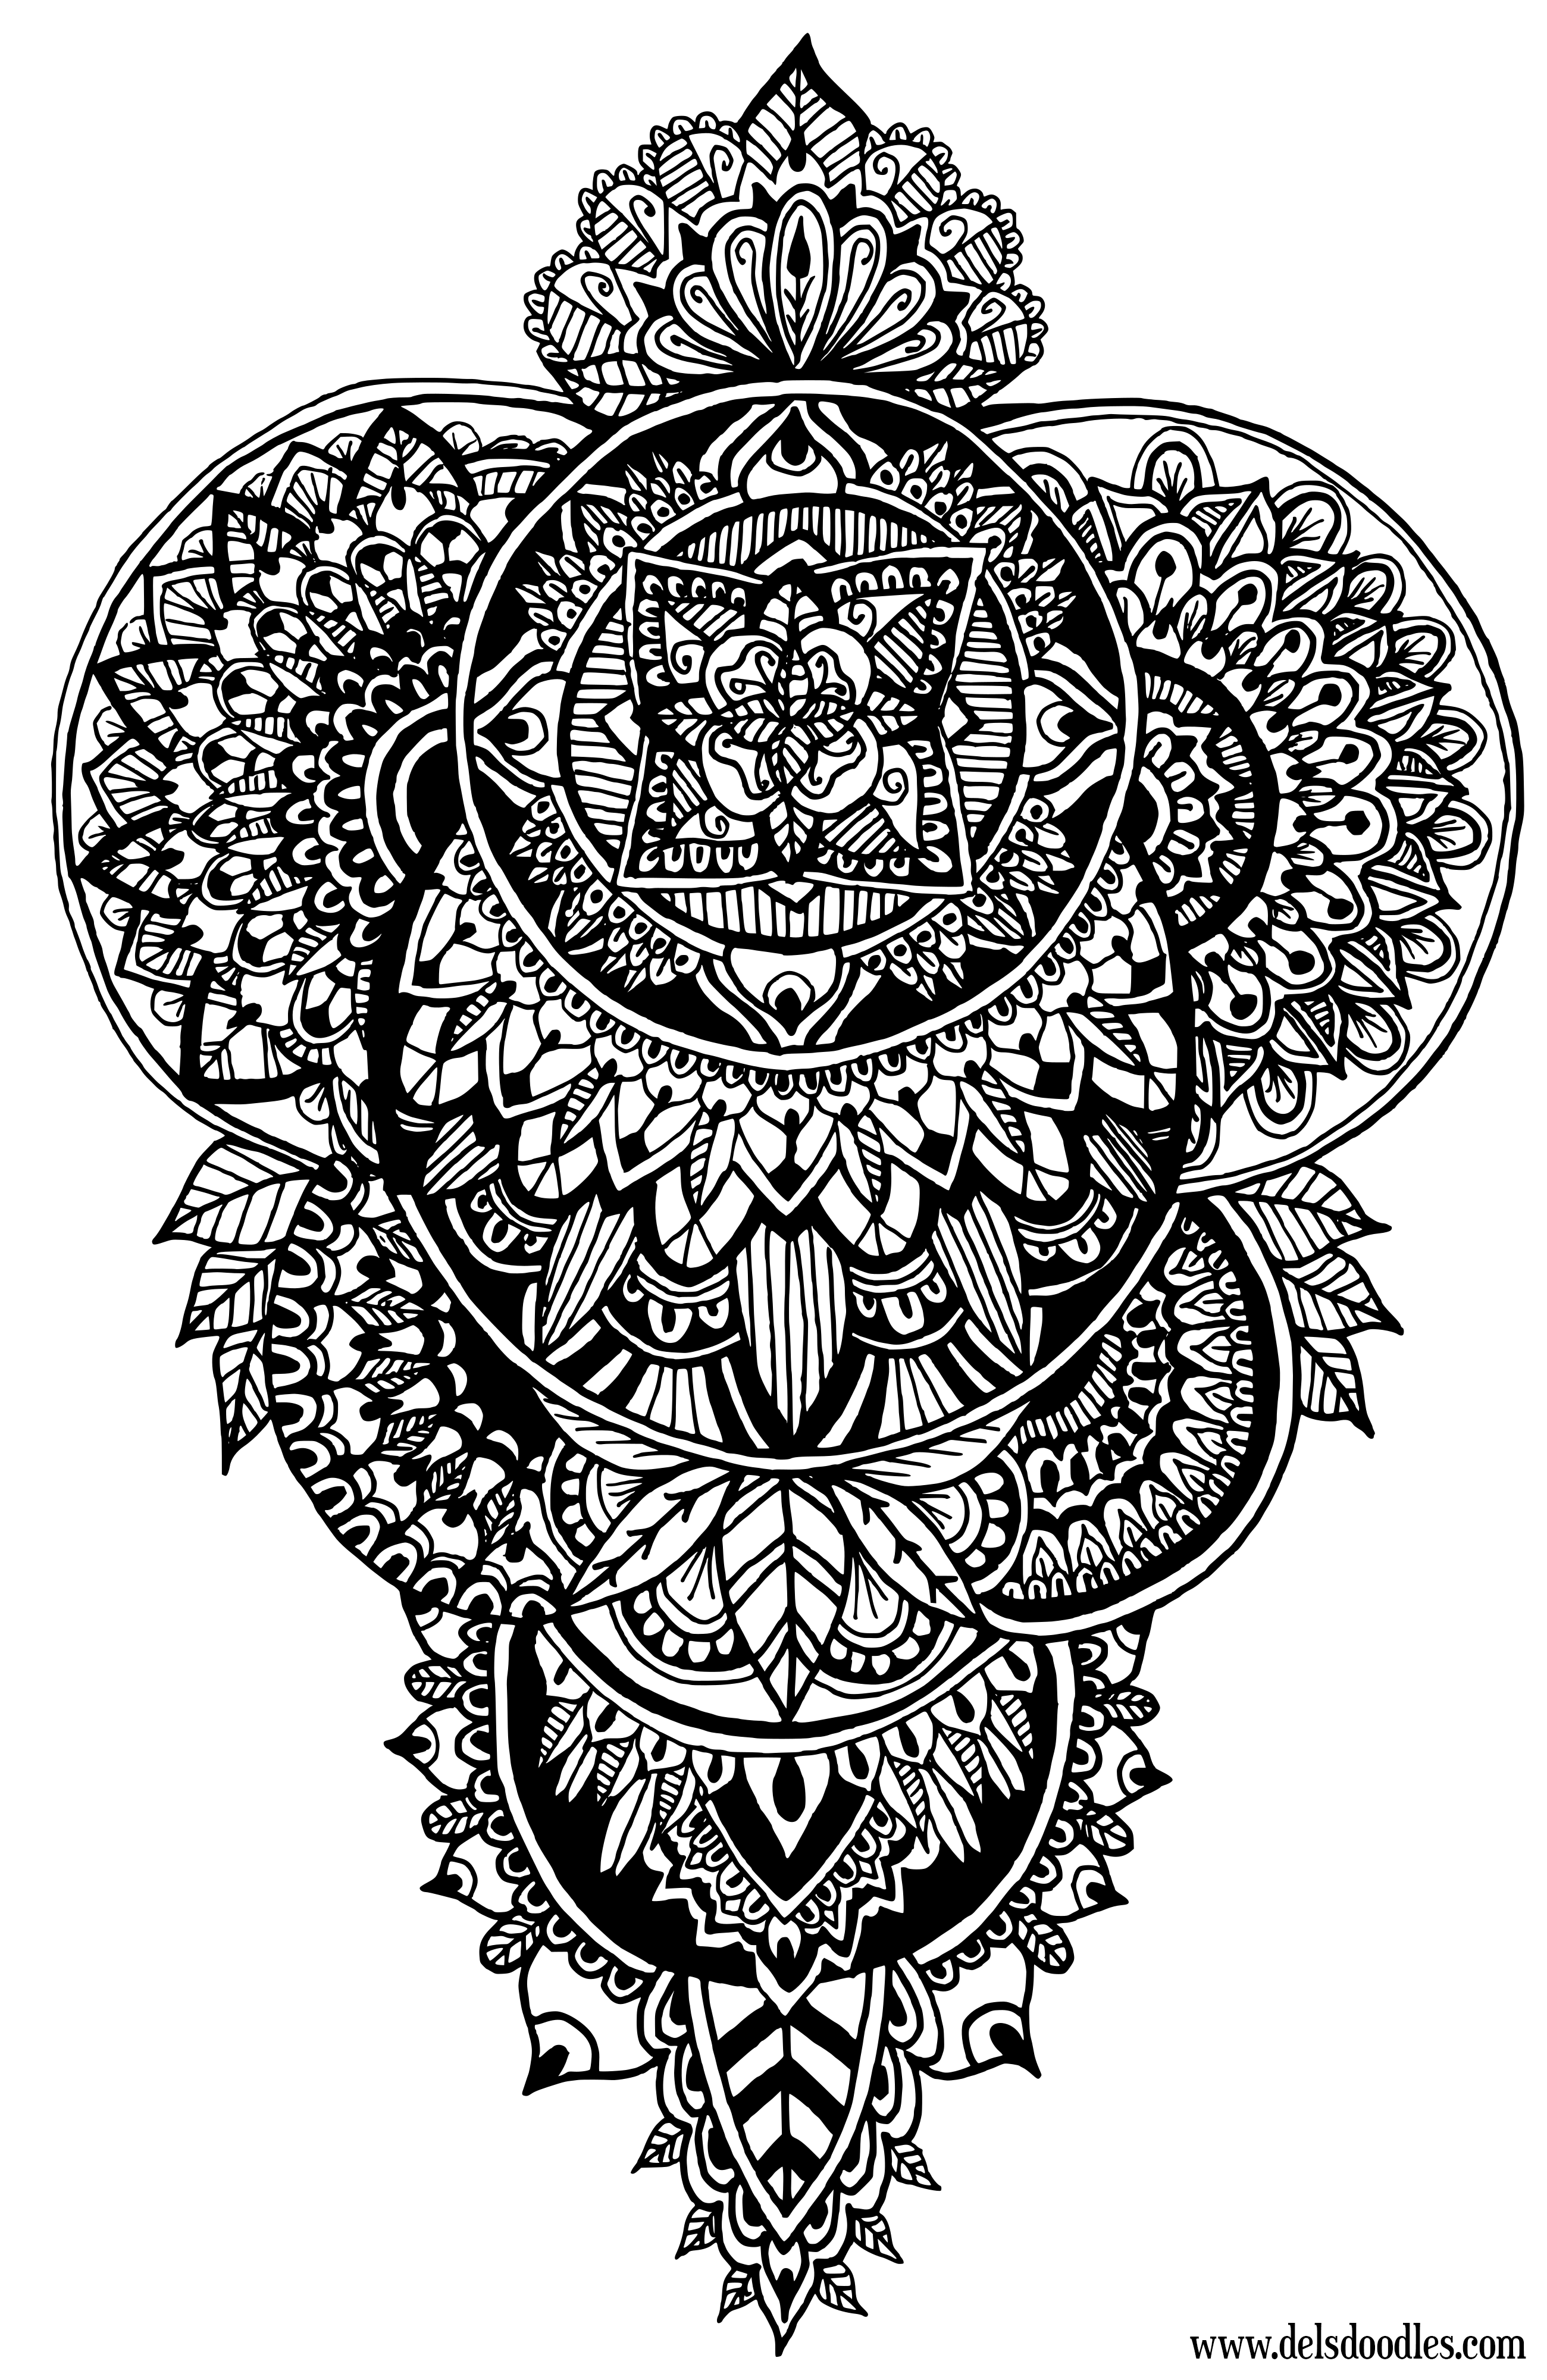 detailed coloring sheets two detailed colouring pages sheets detailed coloring